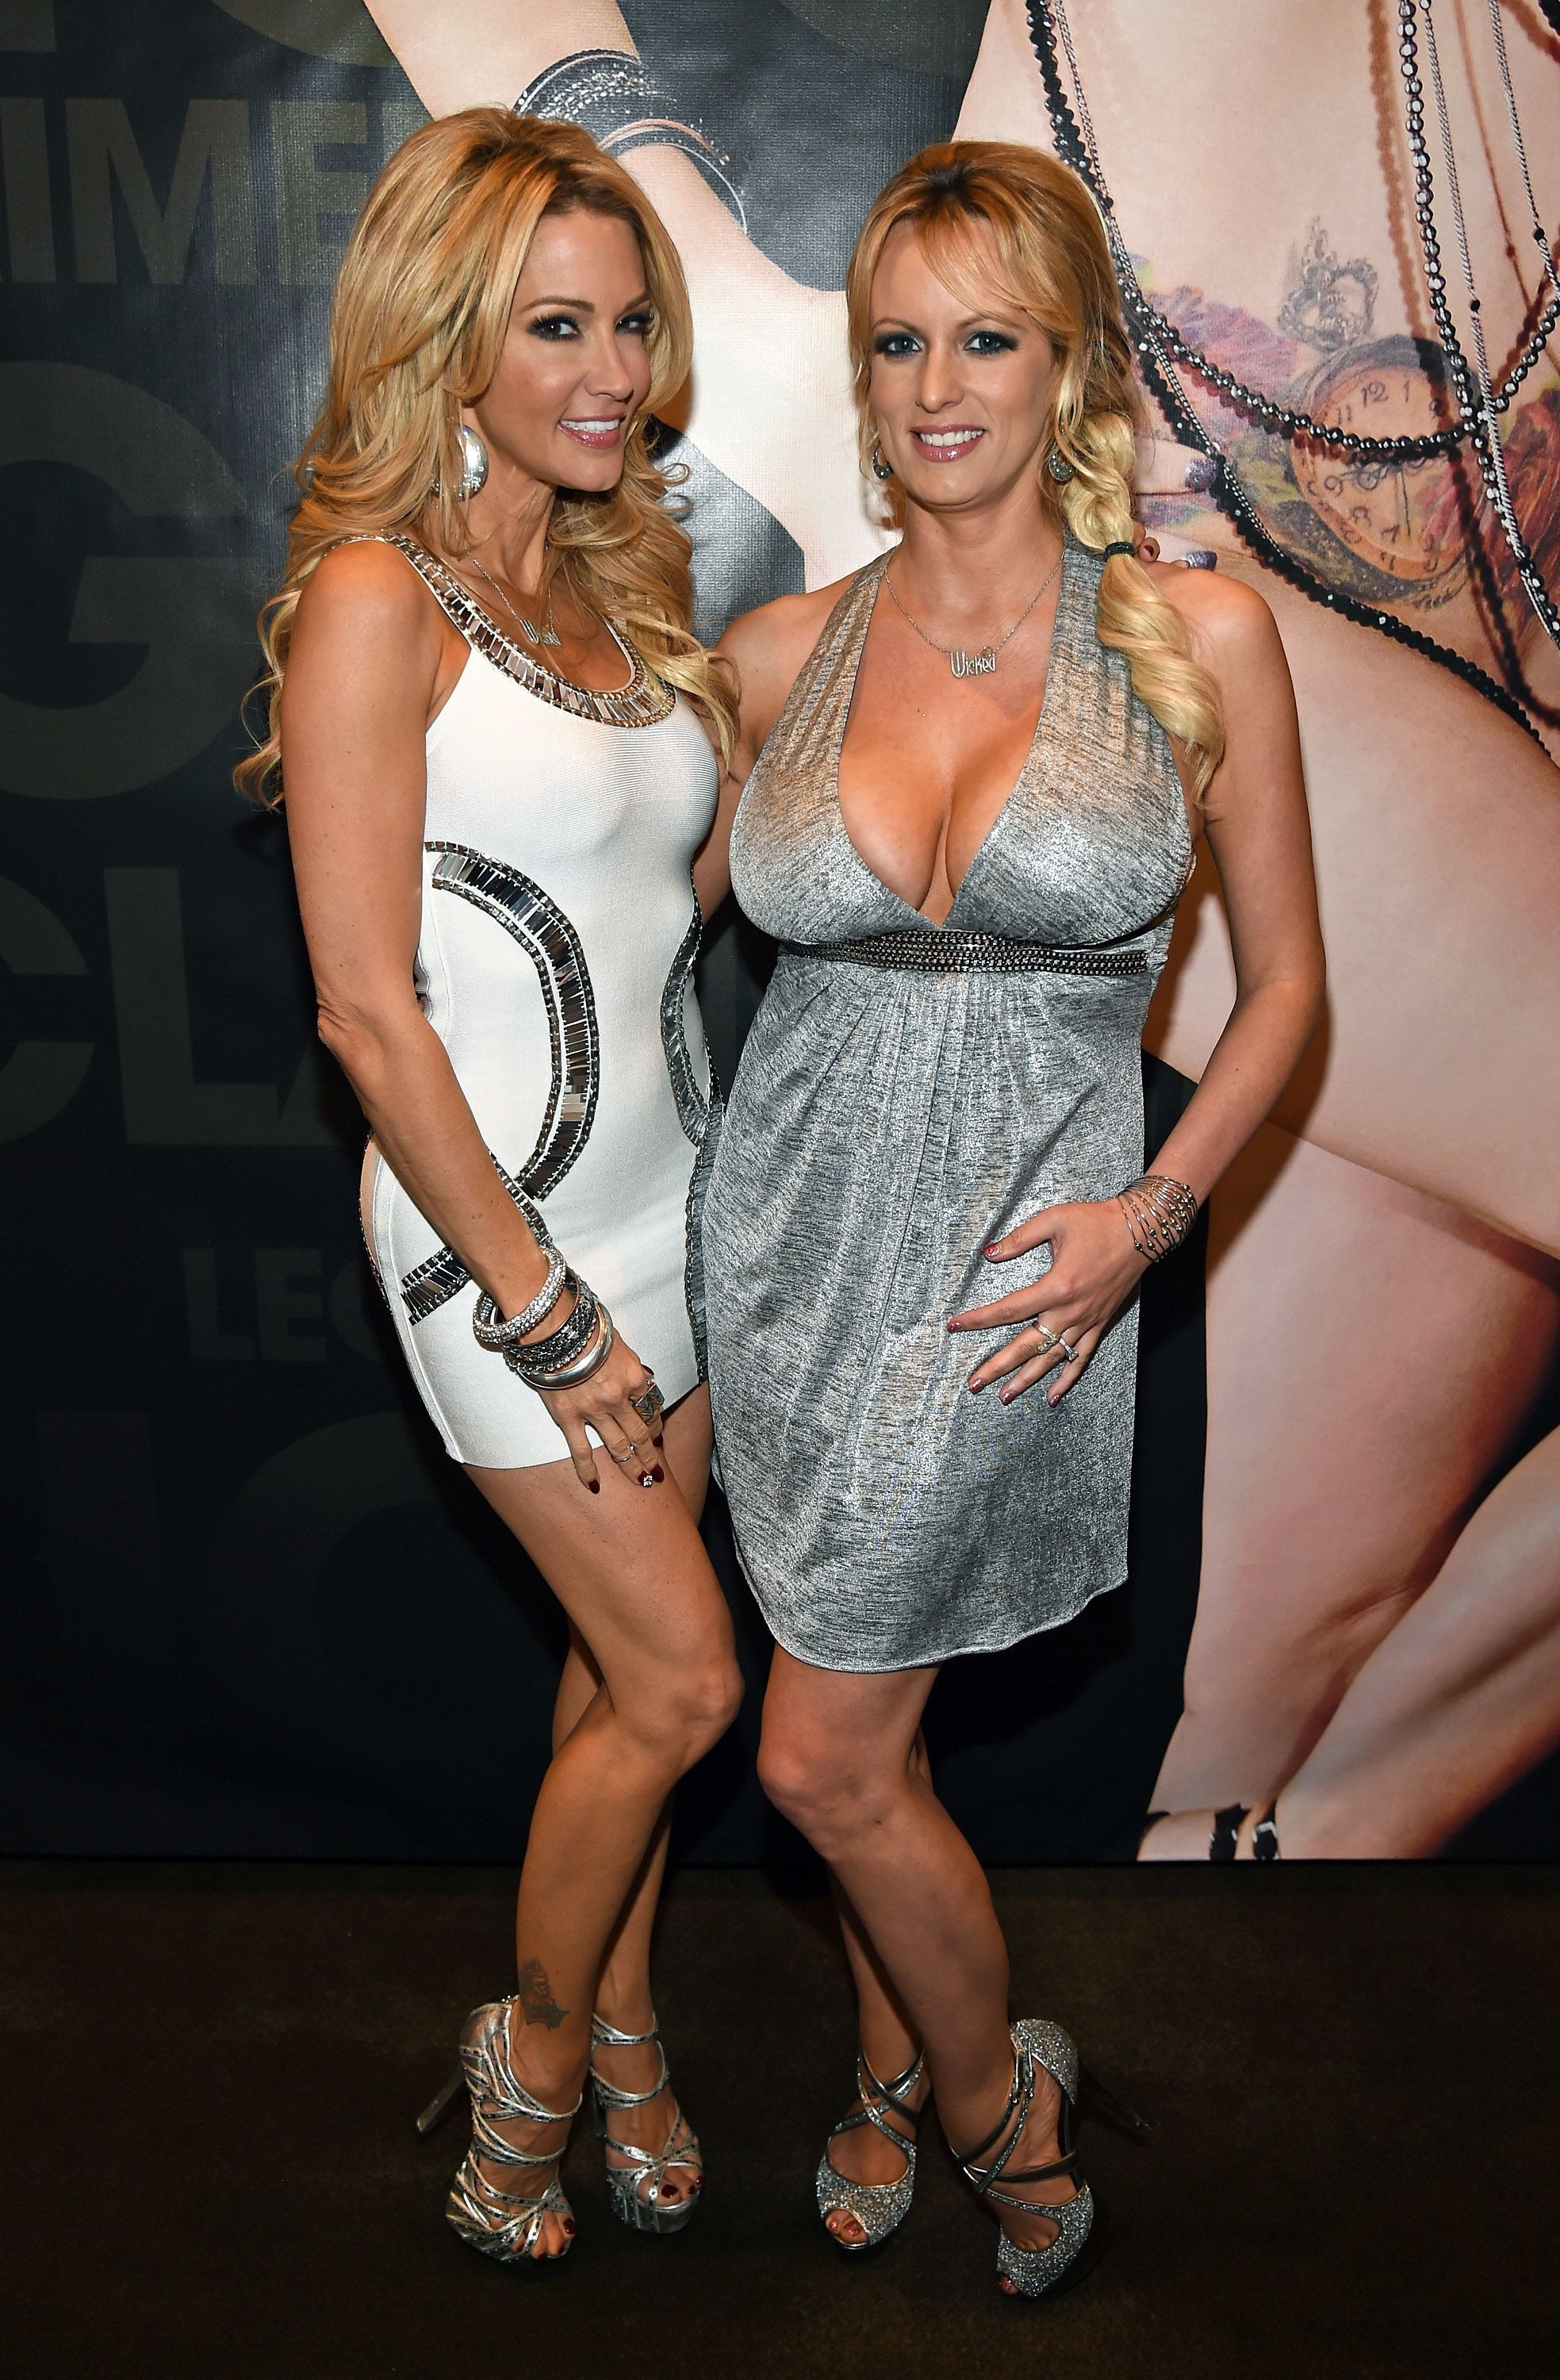 Jessica drake wicked pictures